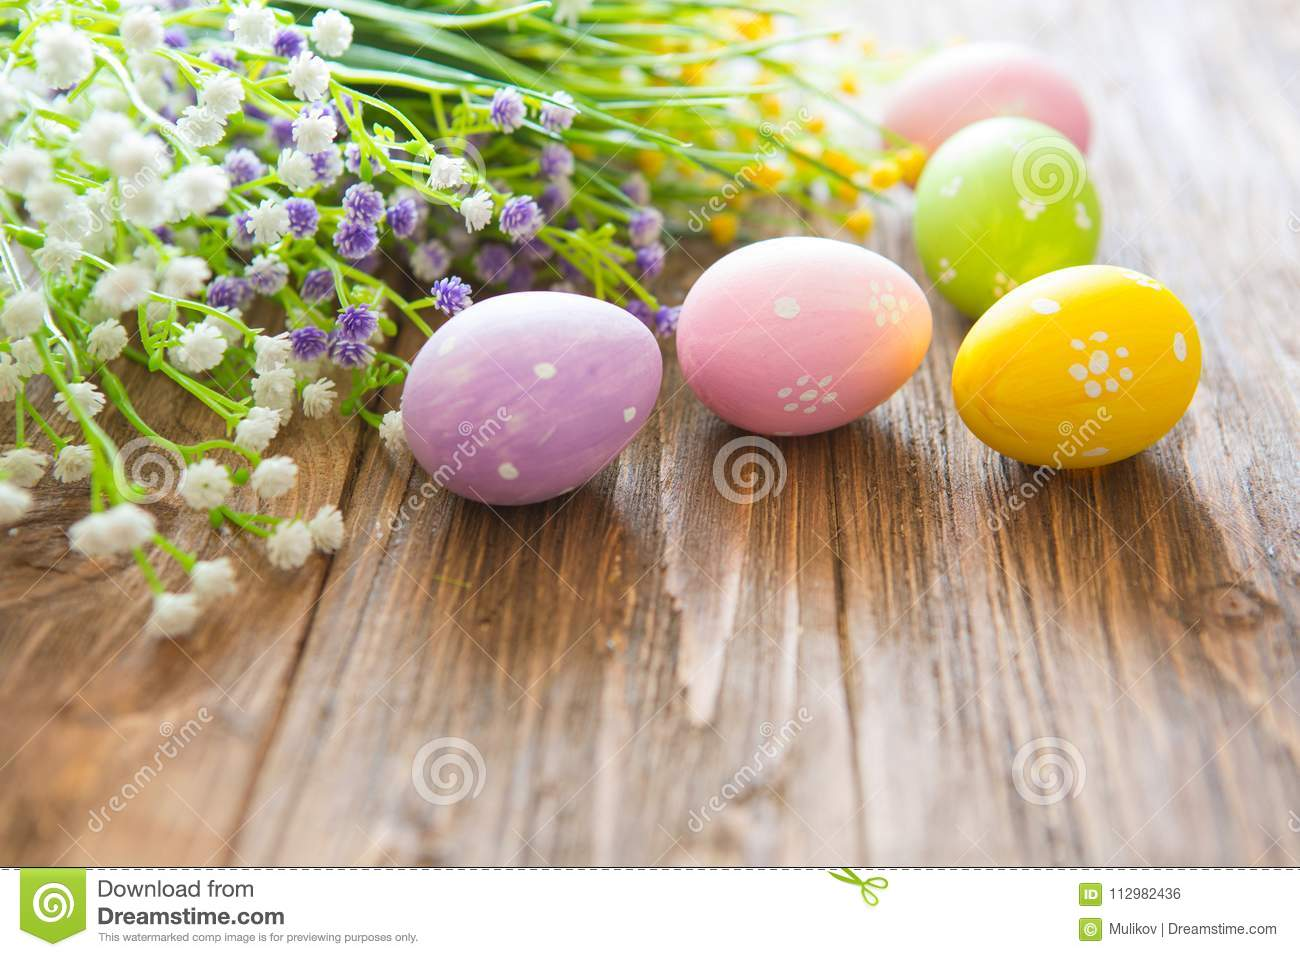 Happy Easter concept. Colorful easter eggs and flowers on wooden plank